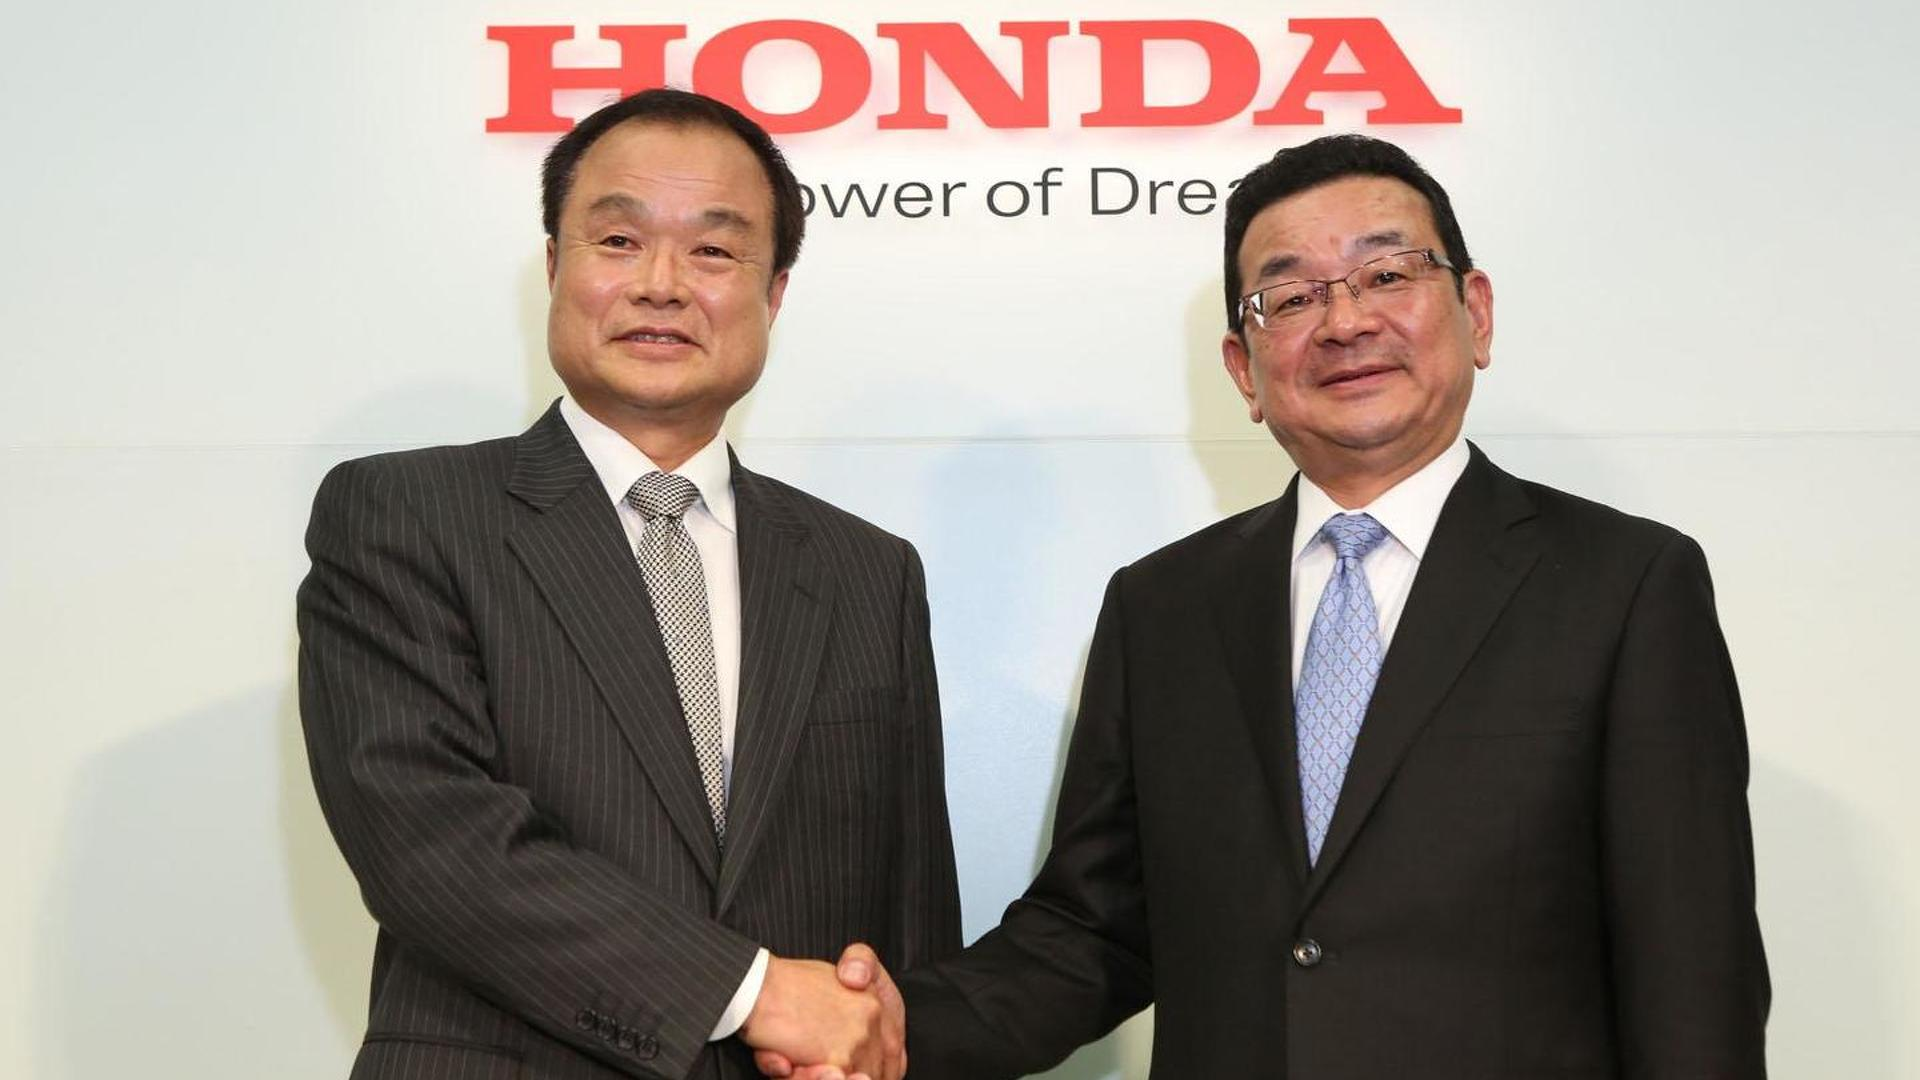 Honda President Takanobu Ito to step down in June